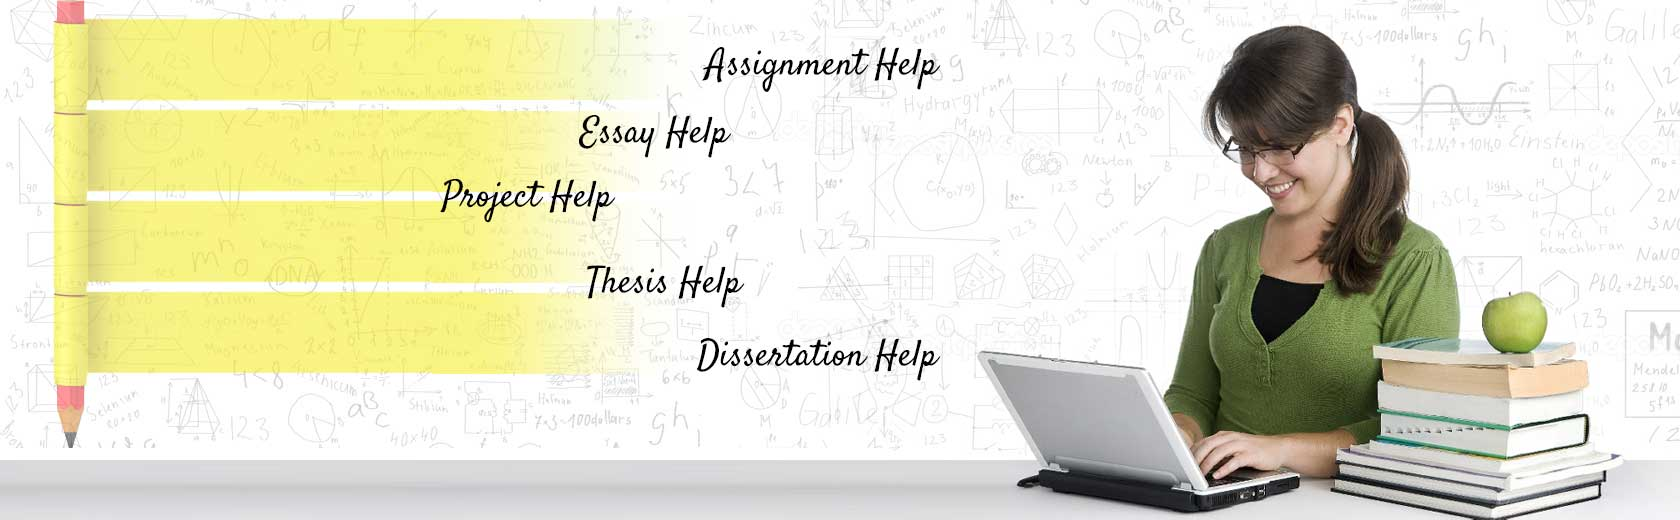 mathematics assignment help how to plan homework assignment task  online classes for high school take online class for me online can you take online classes get a grads in your mathematics assignment the help